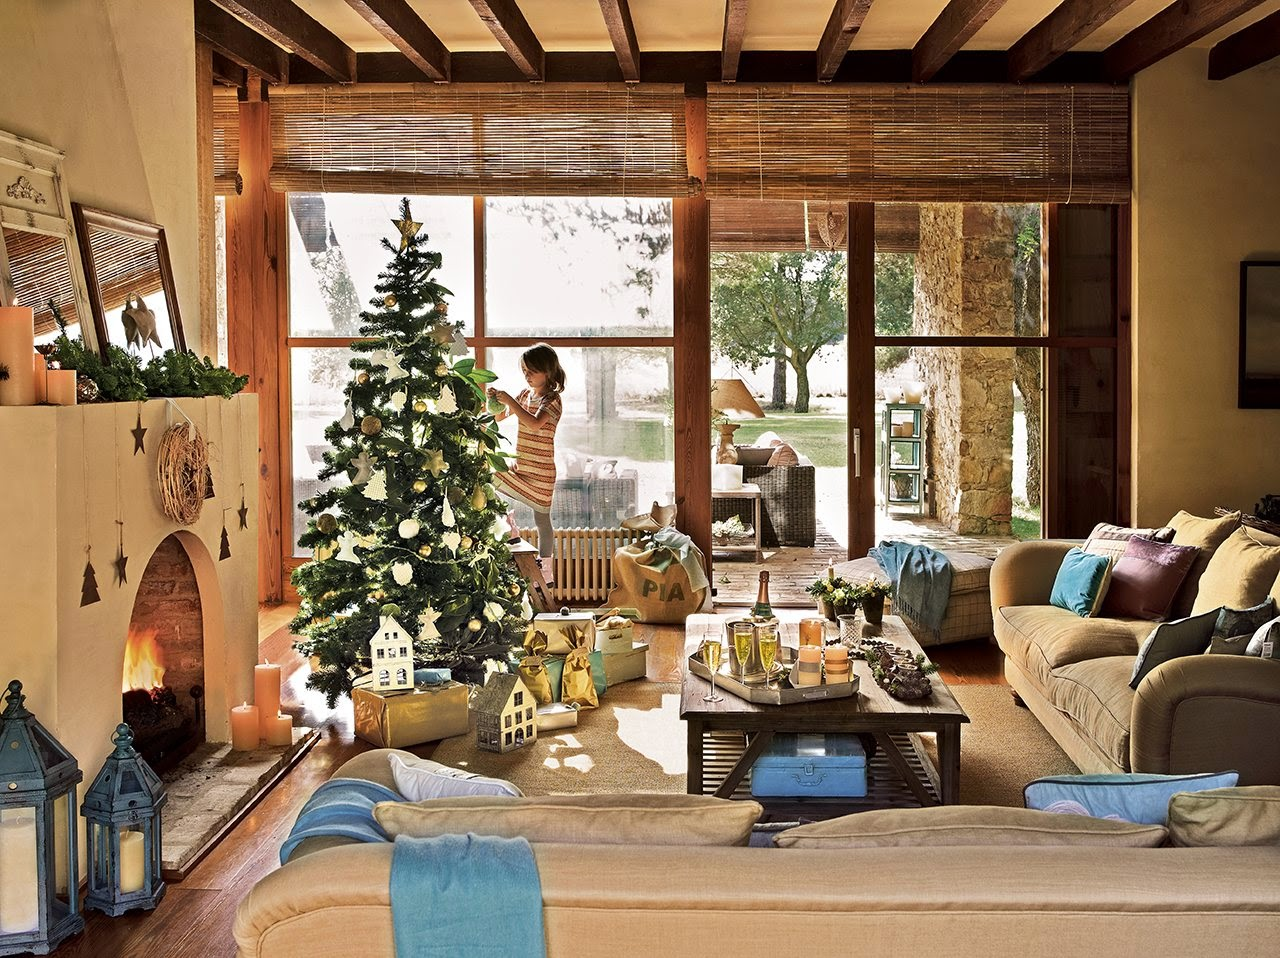 Beautiful christmas decor in a spanish home for Home decorations for christmas